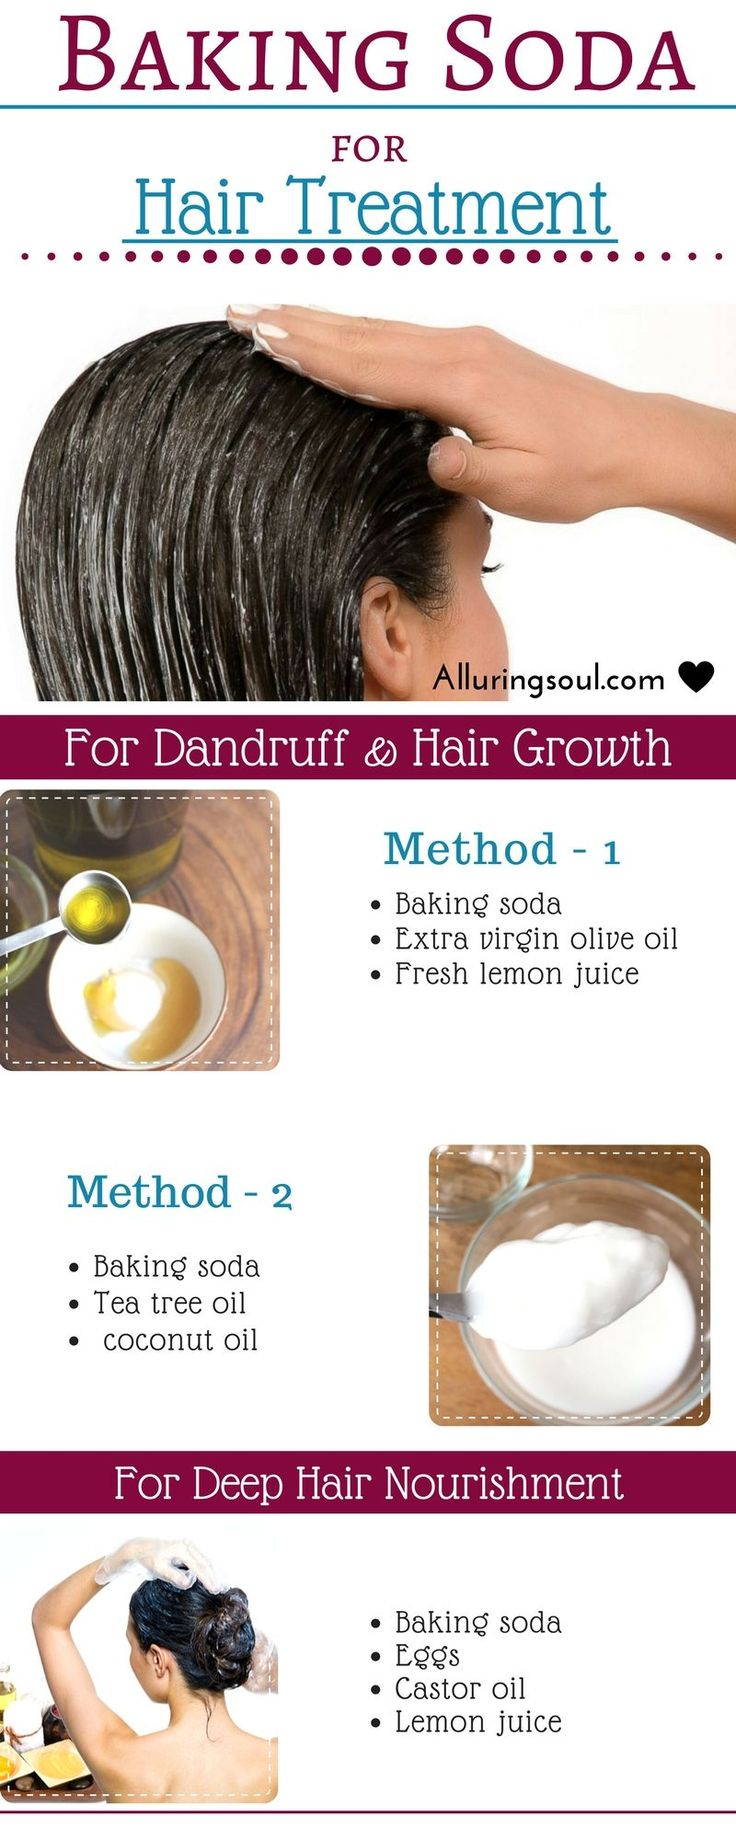 Baking soda is very effective for hair growth as well as for dandruff. It improv...